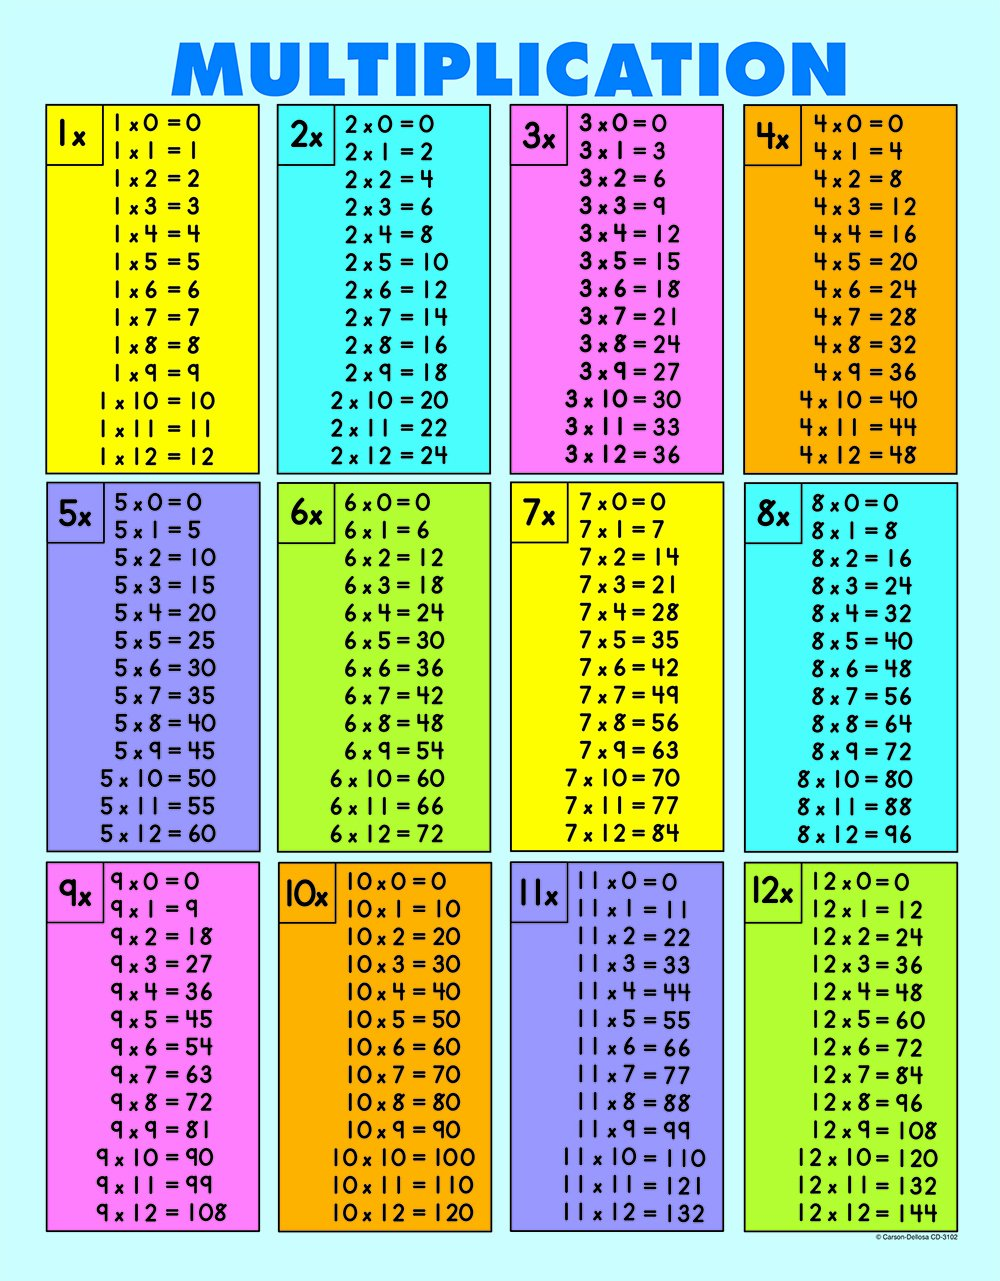 Multiplication facts through 12 popflyboys for Table de multiplication 1 a 12